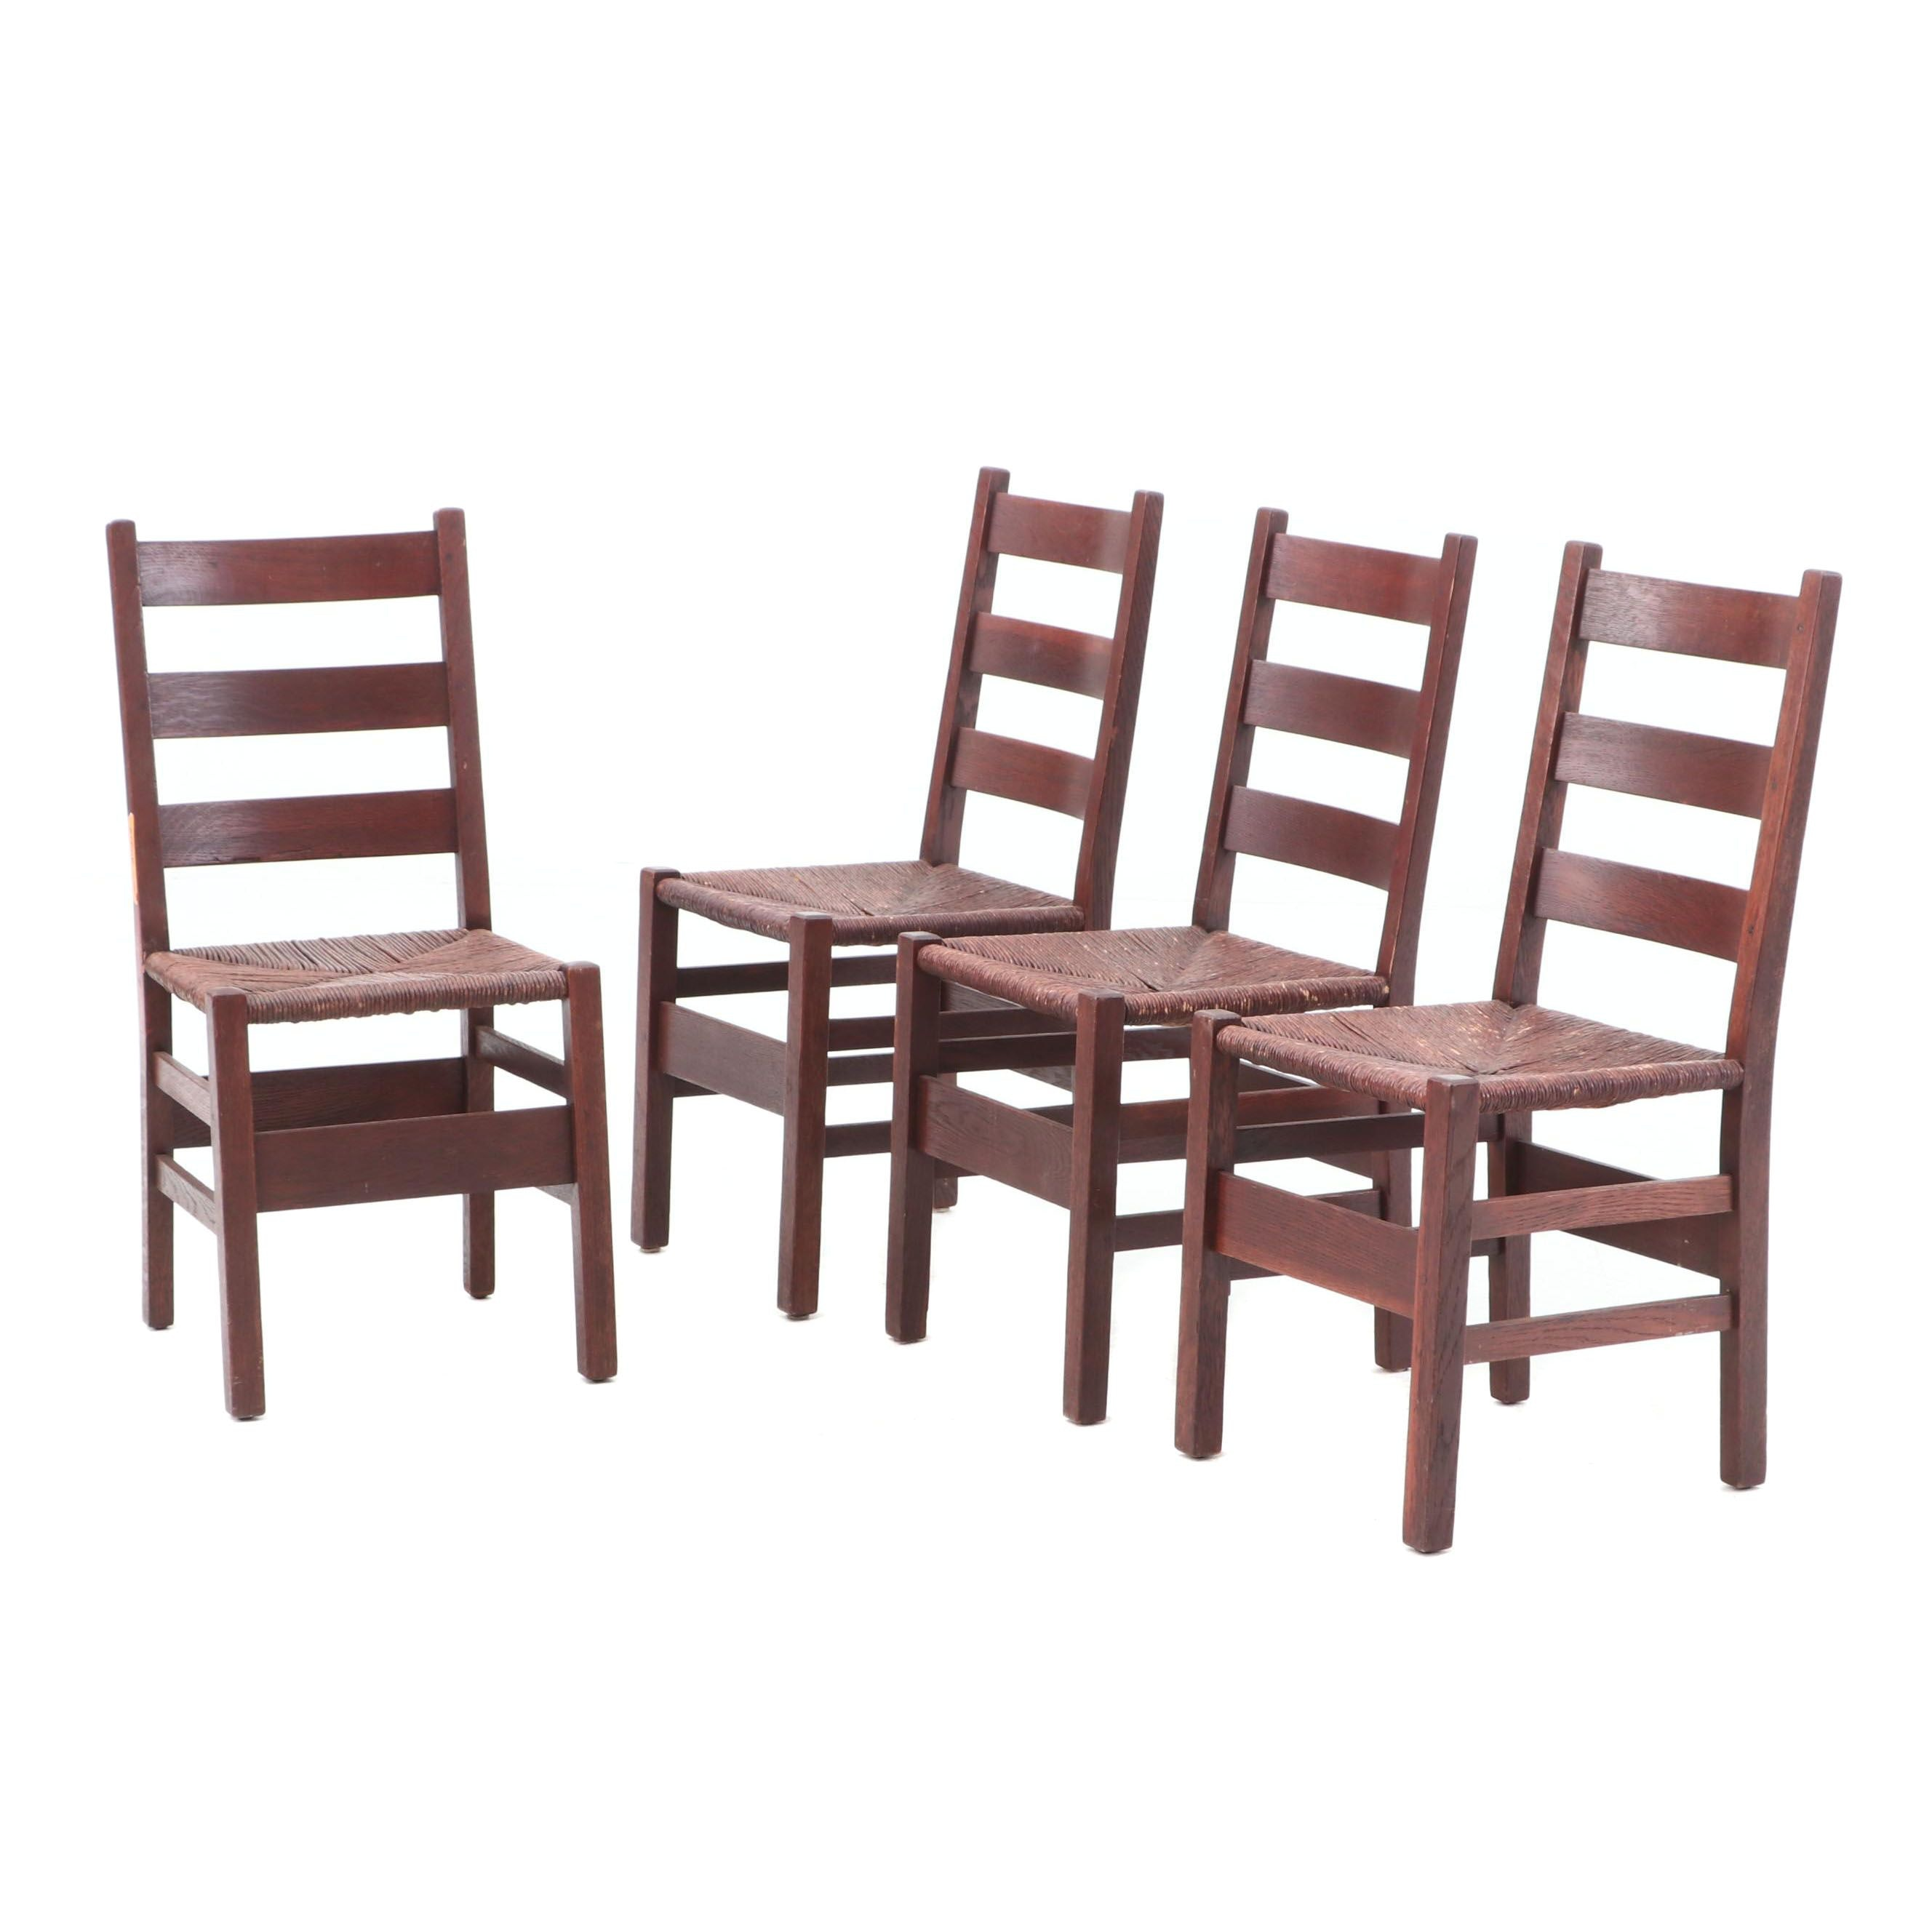 Four Gustav Stickley Arts and Crafts Oak Side Chairs, Circa 1915